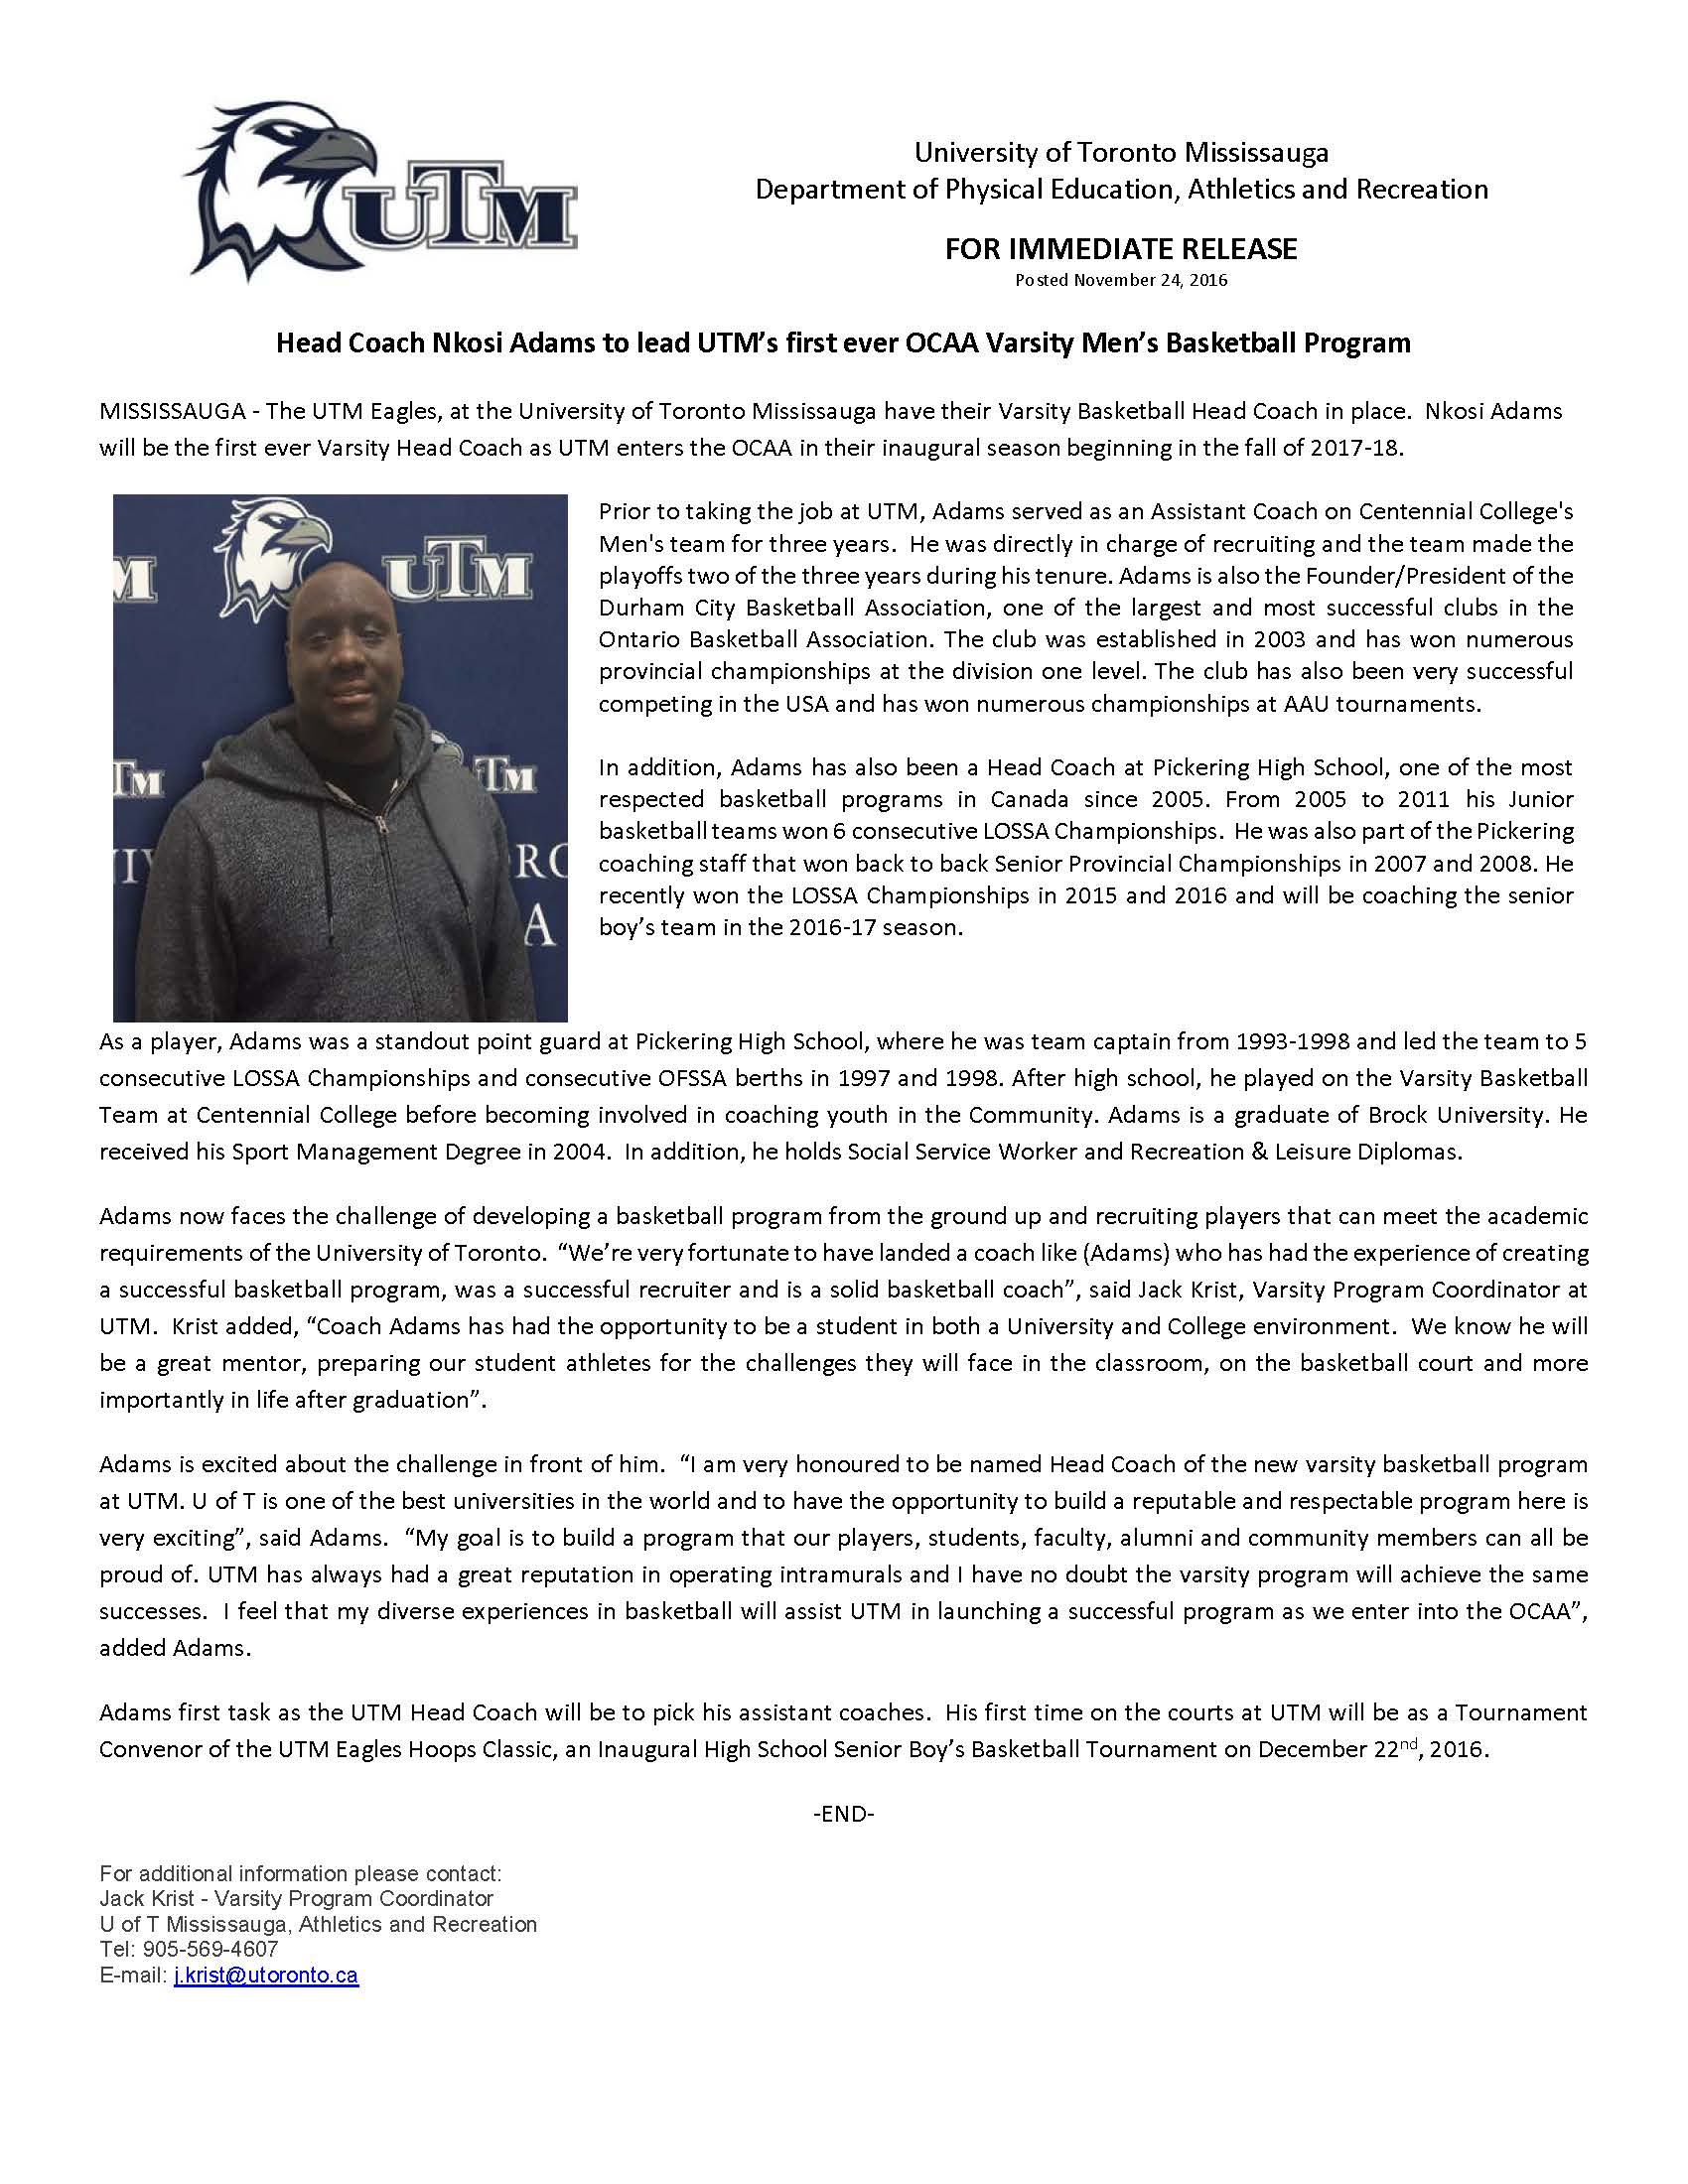 Men's OCAA Varsity Basketball Head Coach Press Release